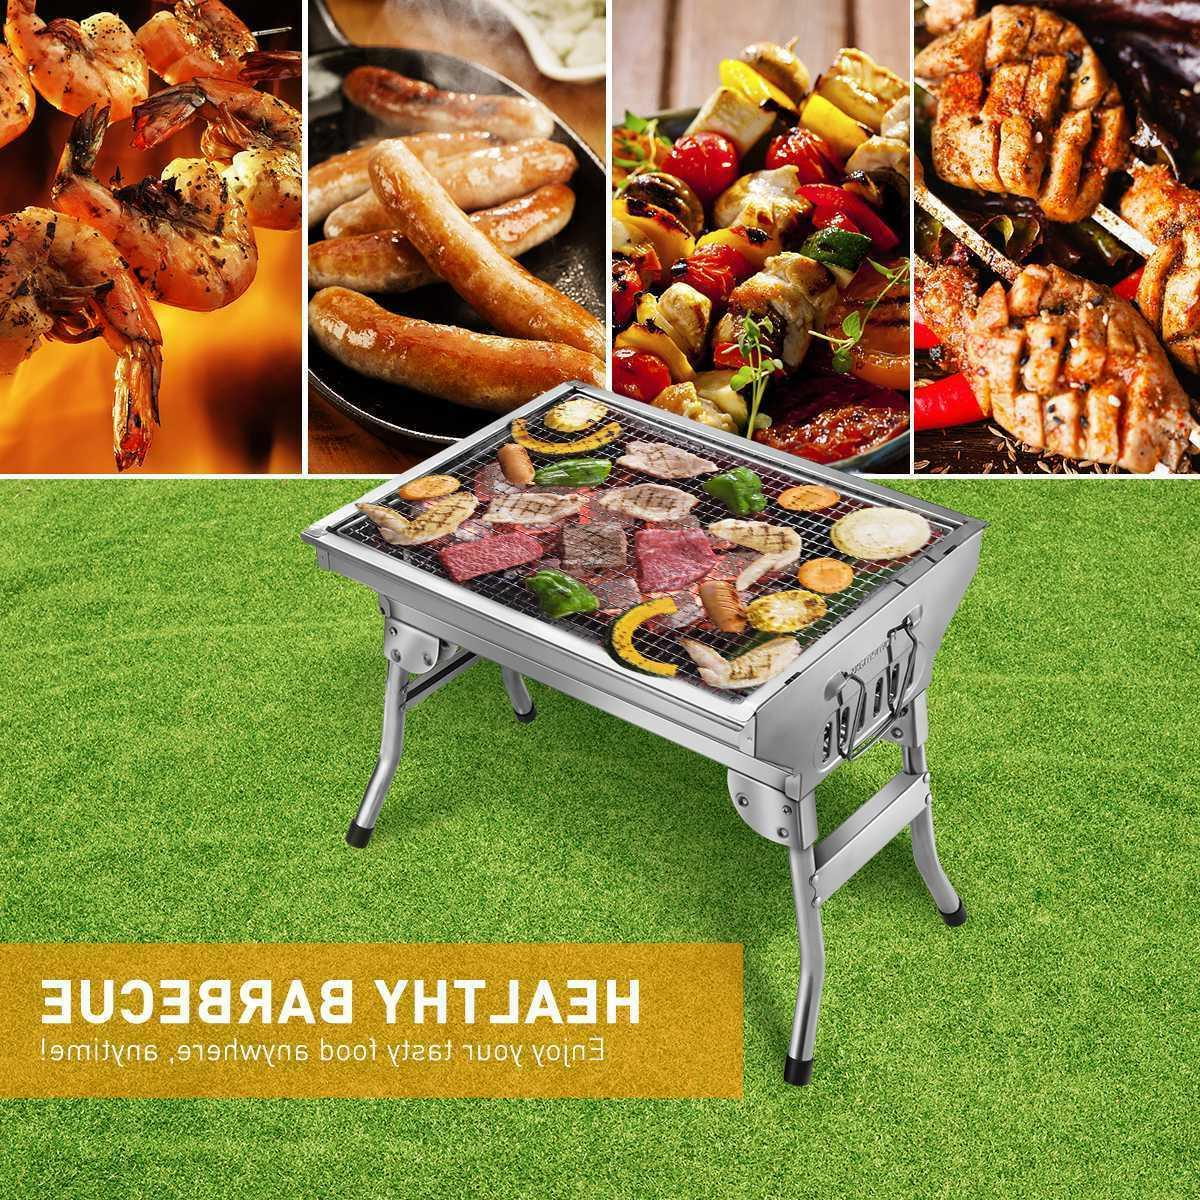 Portable Charcoal Grill Steel Outdoor Camp Backyard BBQ